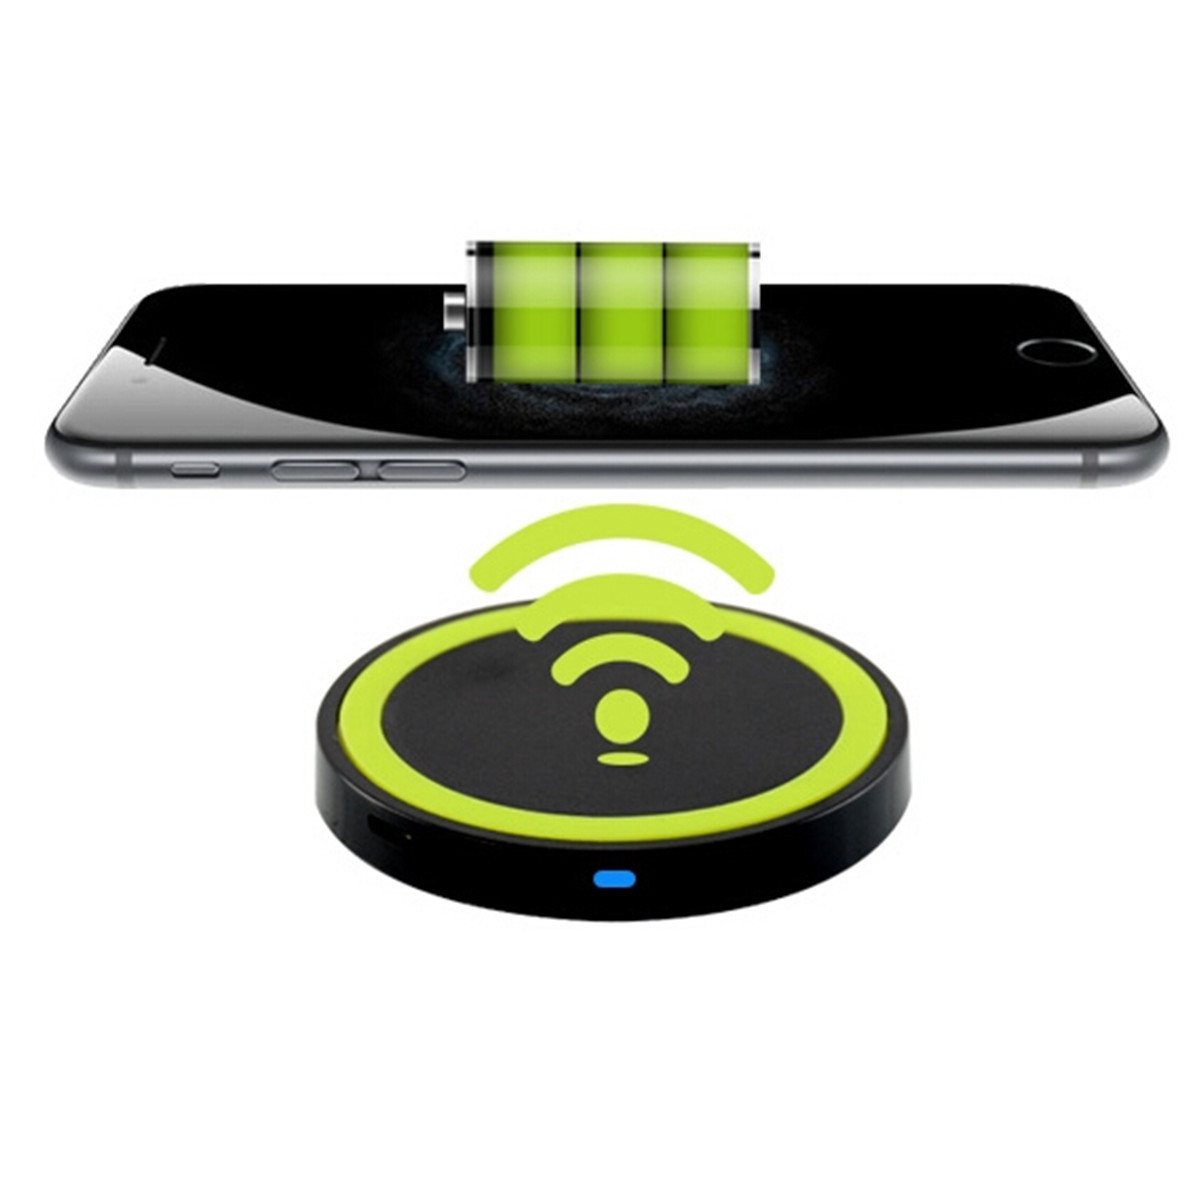 Slim QI Wireless wireless charger pad Charging Charger Pad Mat For Smartphones Android Phone and all Qi-Enabled Devices